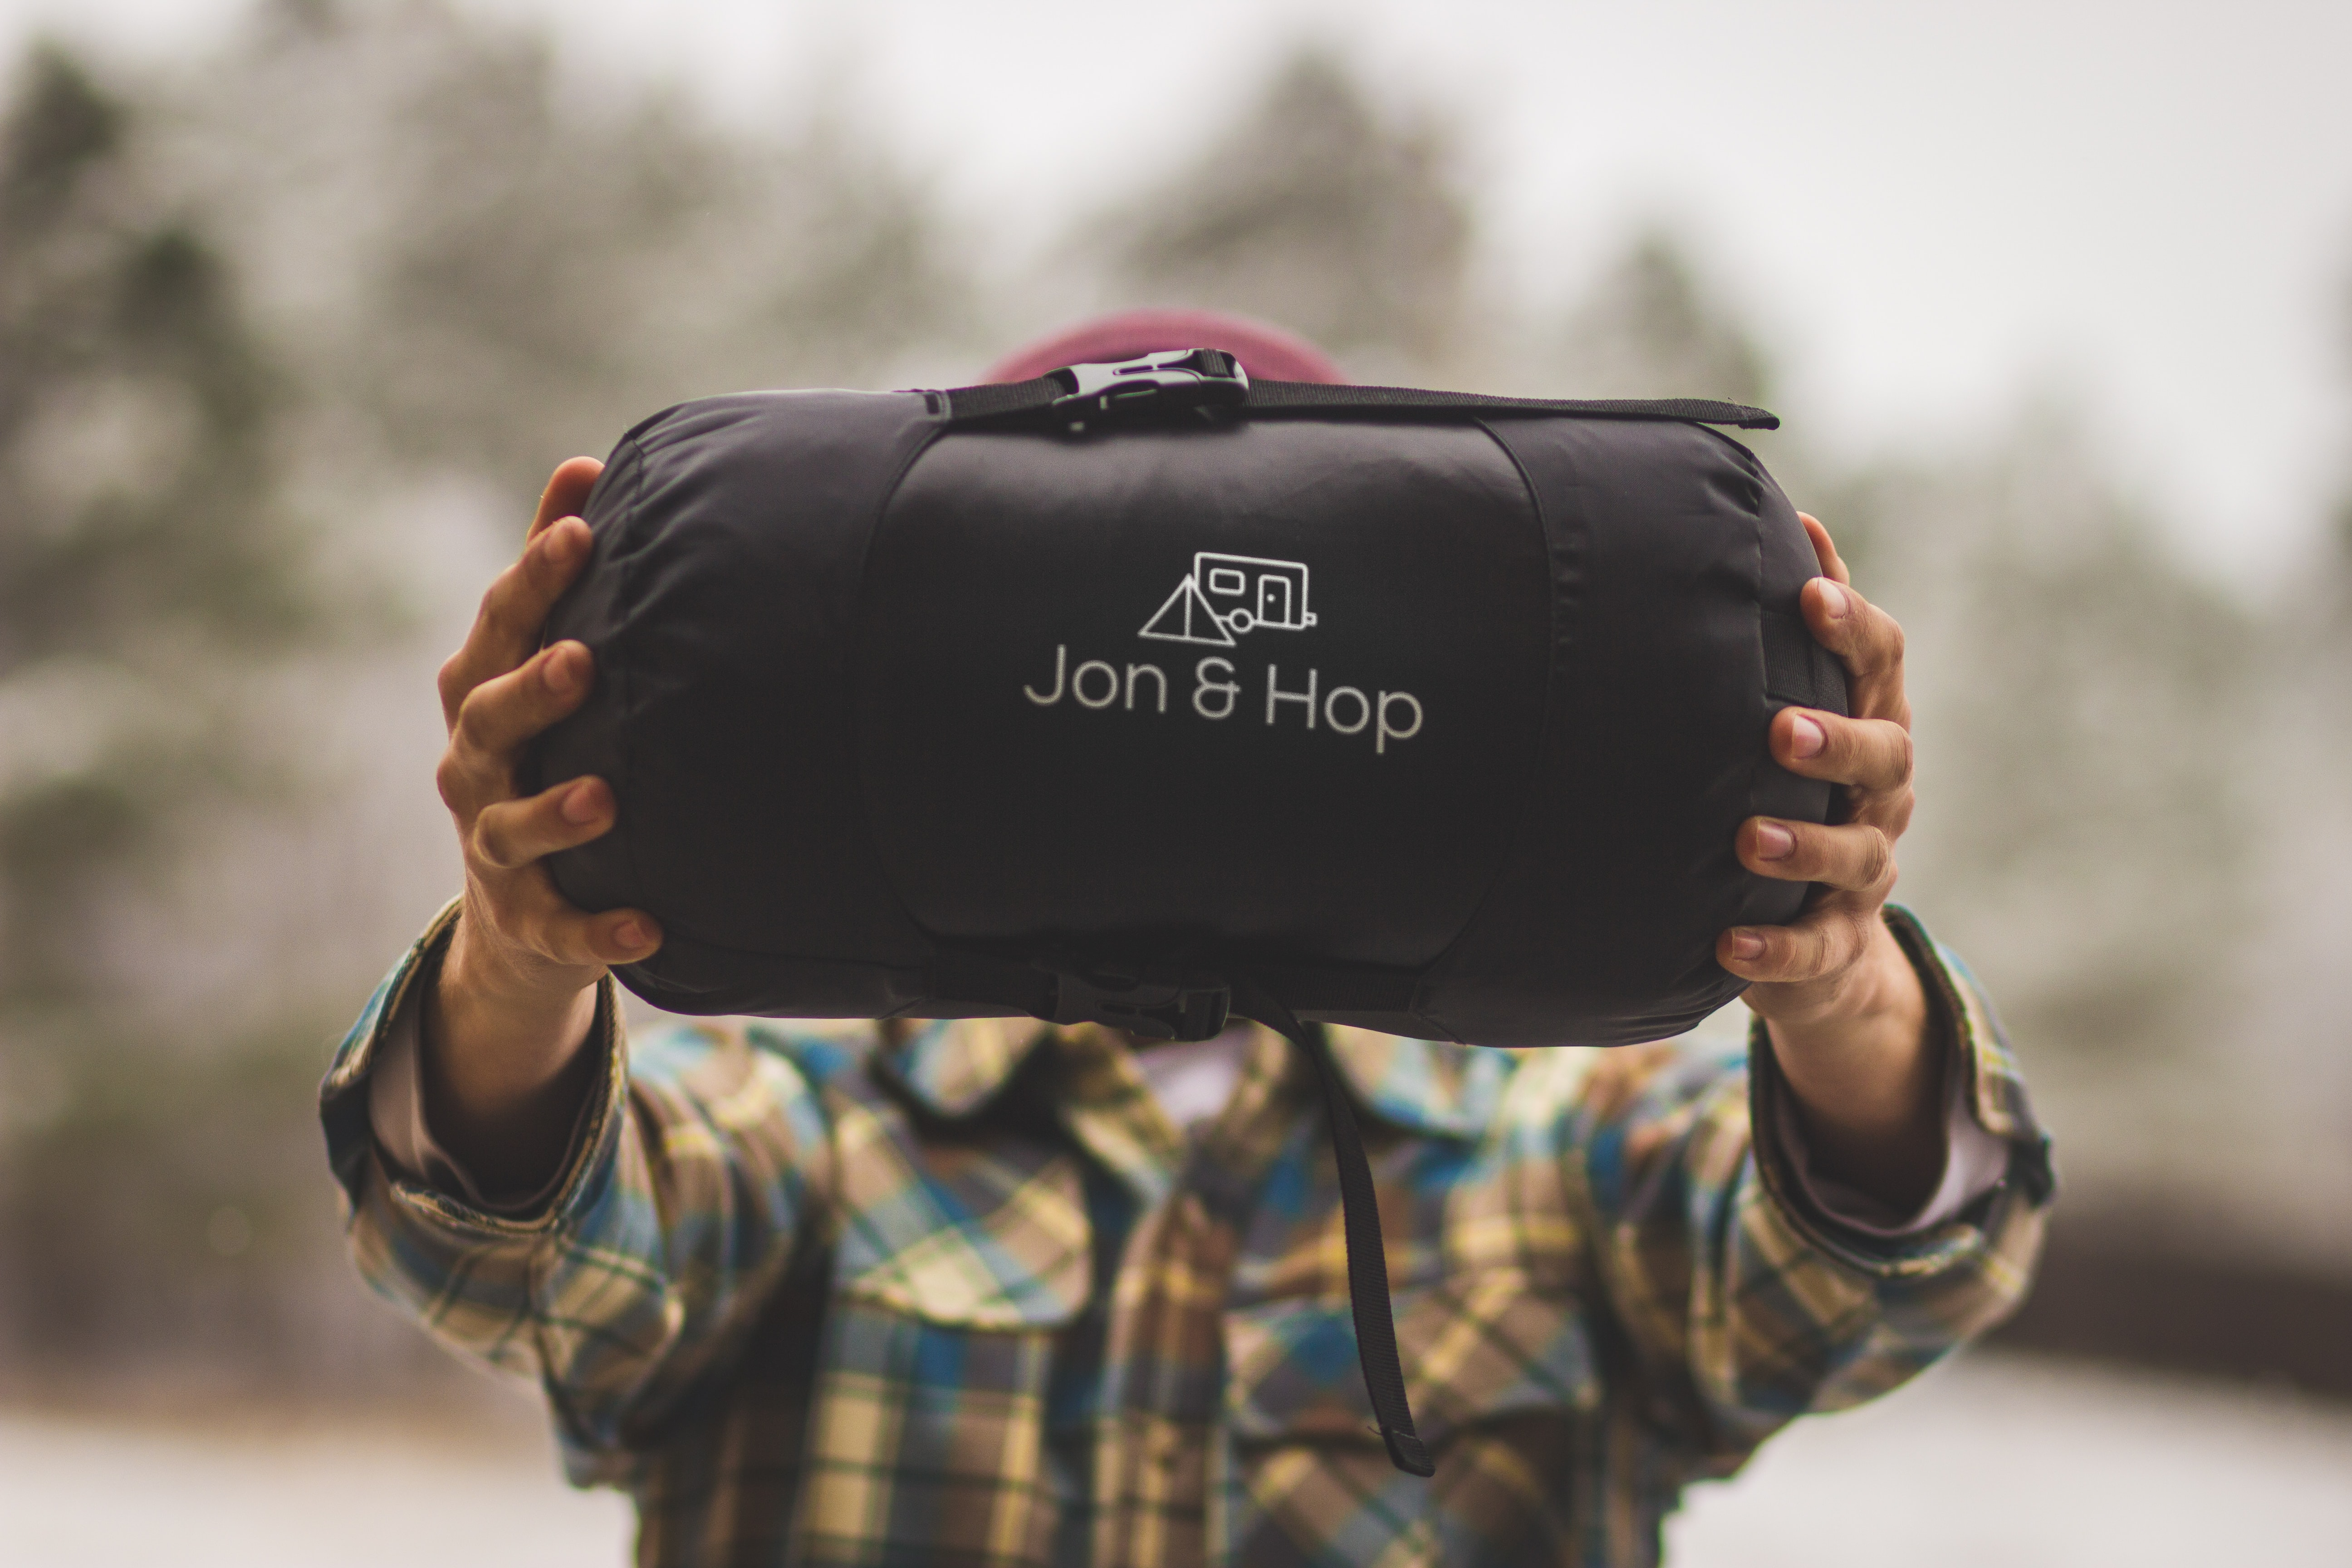 person holding Jon & Hop bag